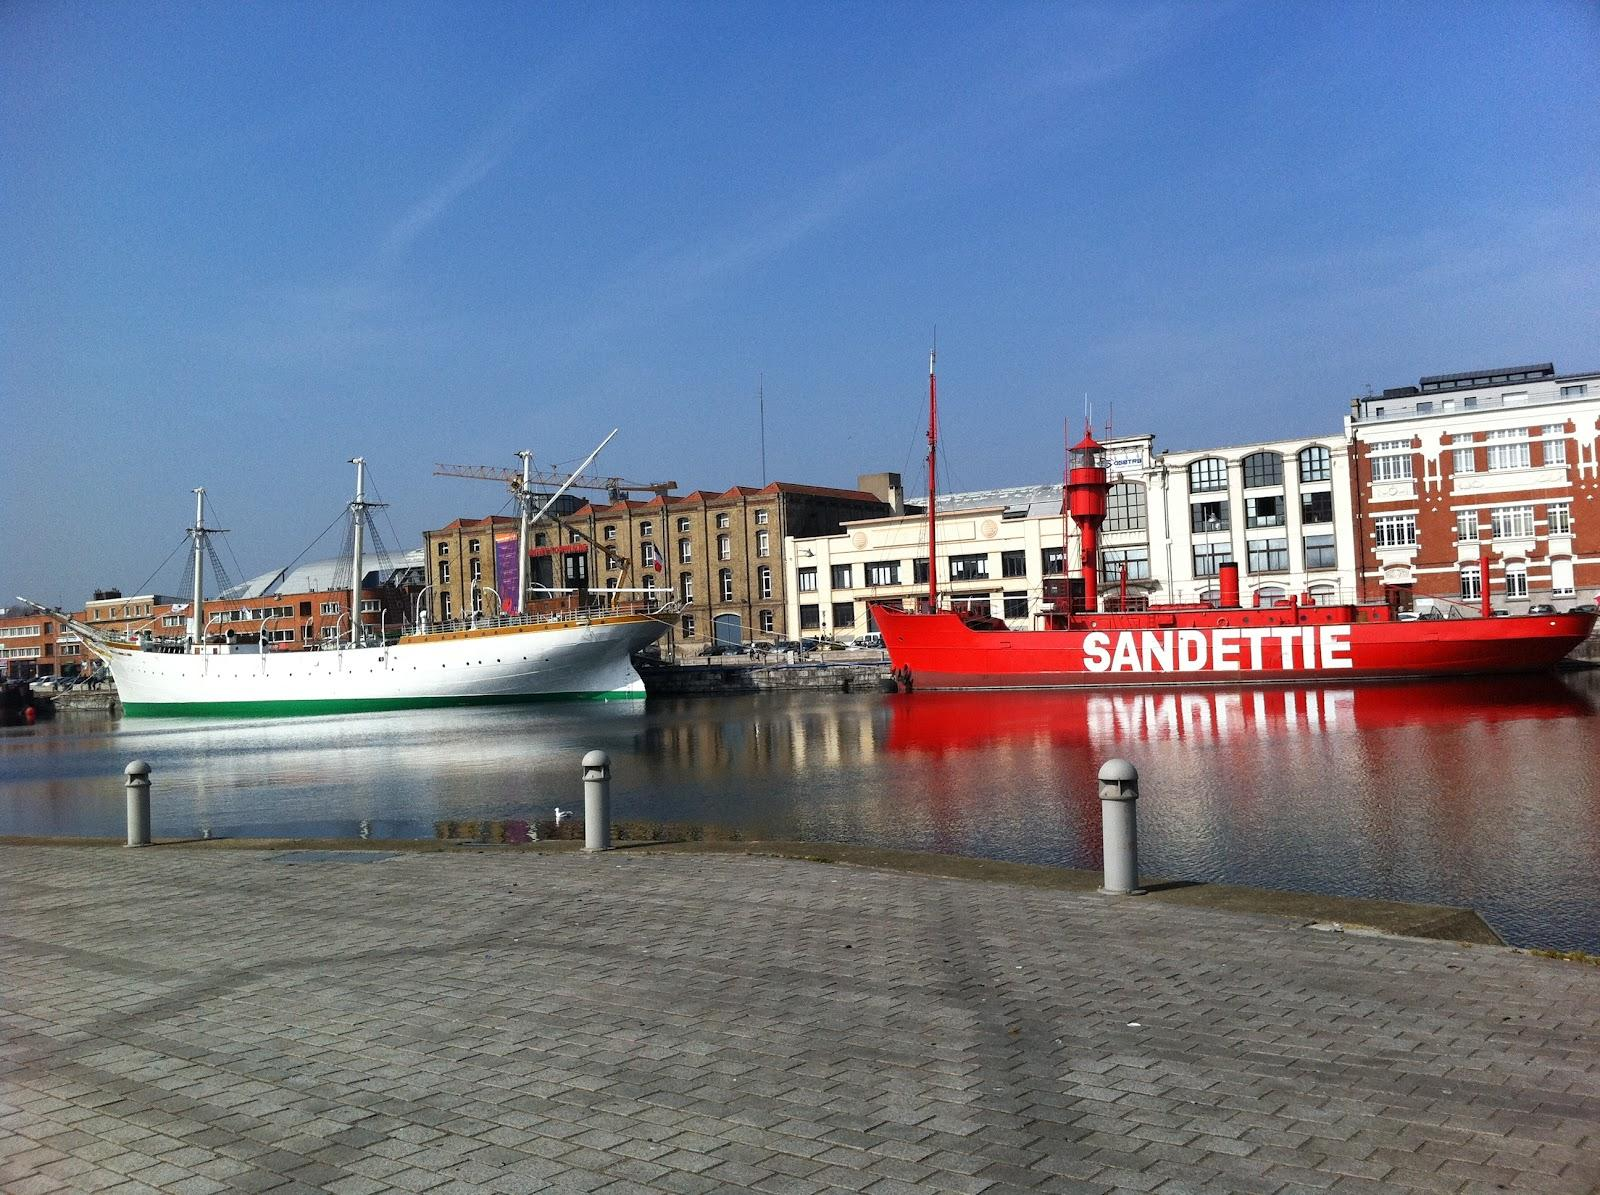 musee-portuaire-dunkerque-1367339917